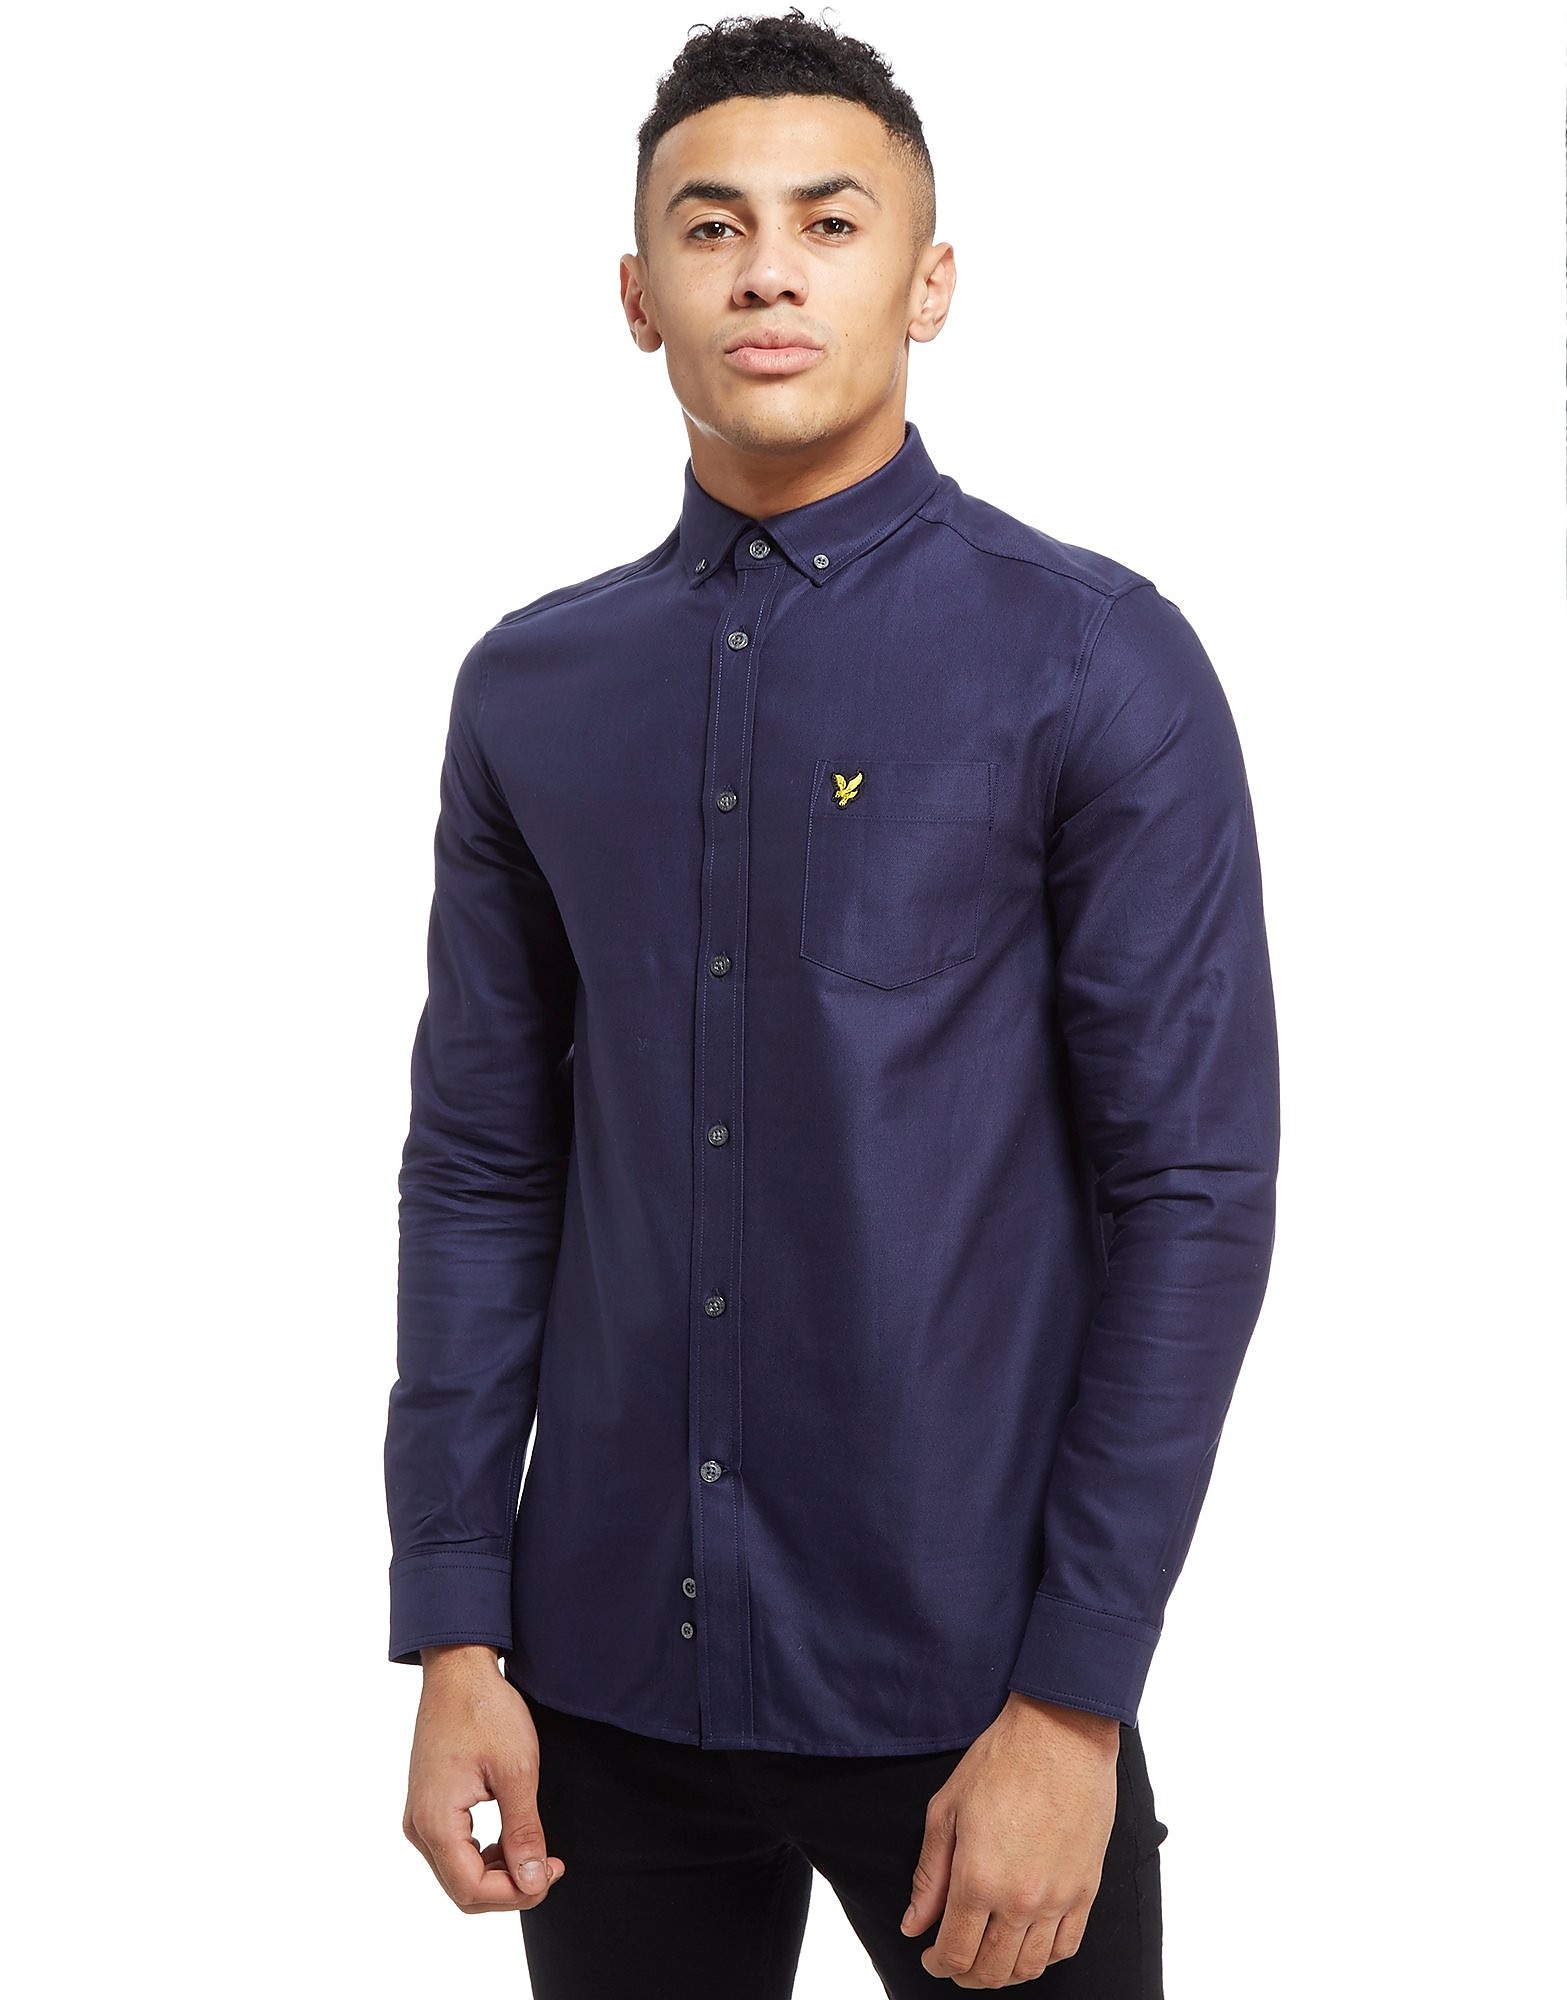 Lyle & Scott Oxford Langarm Hemd